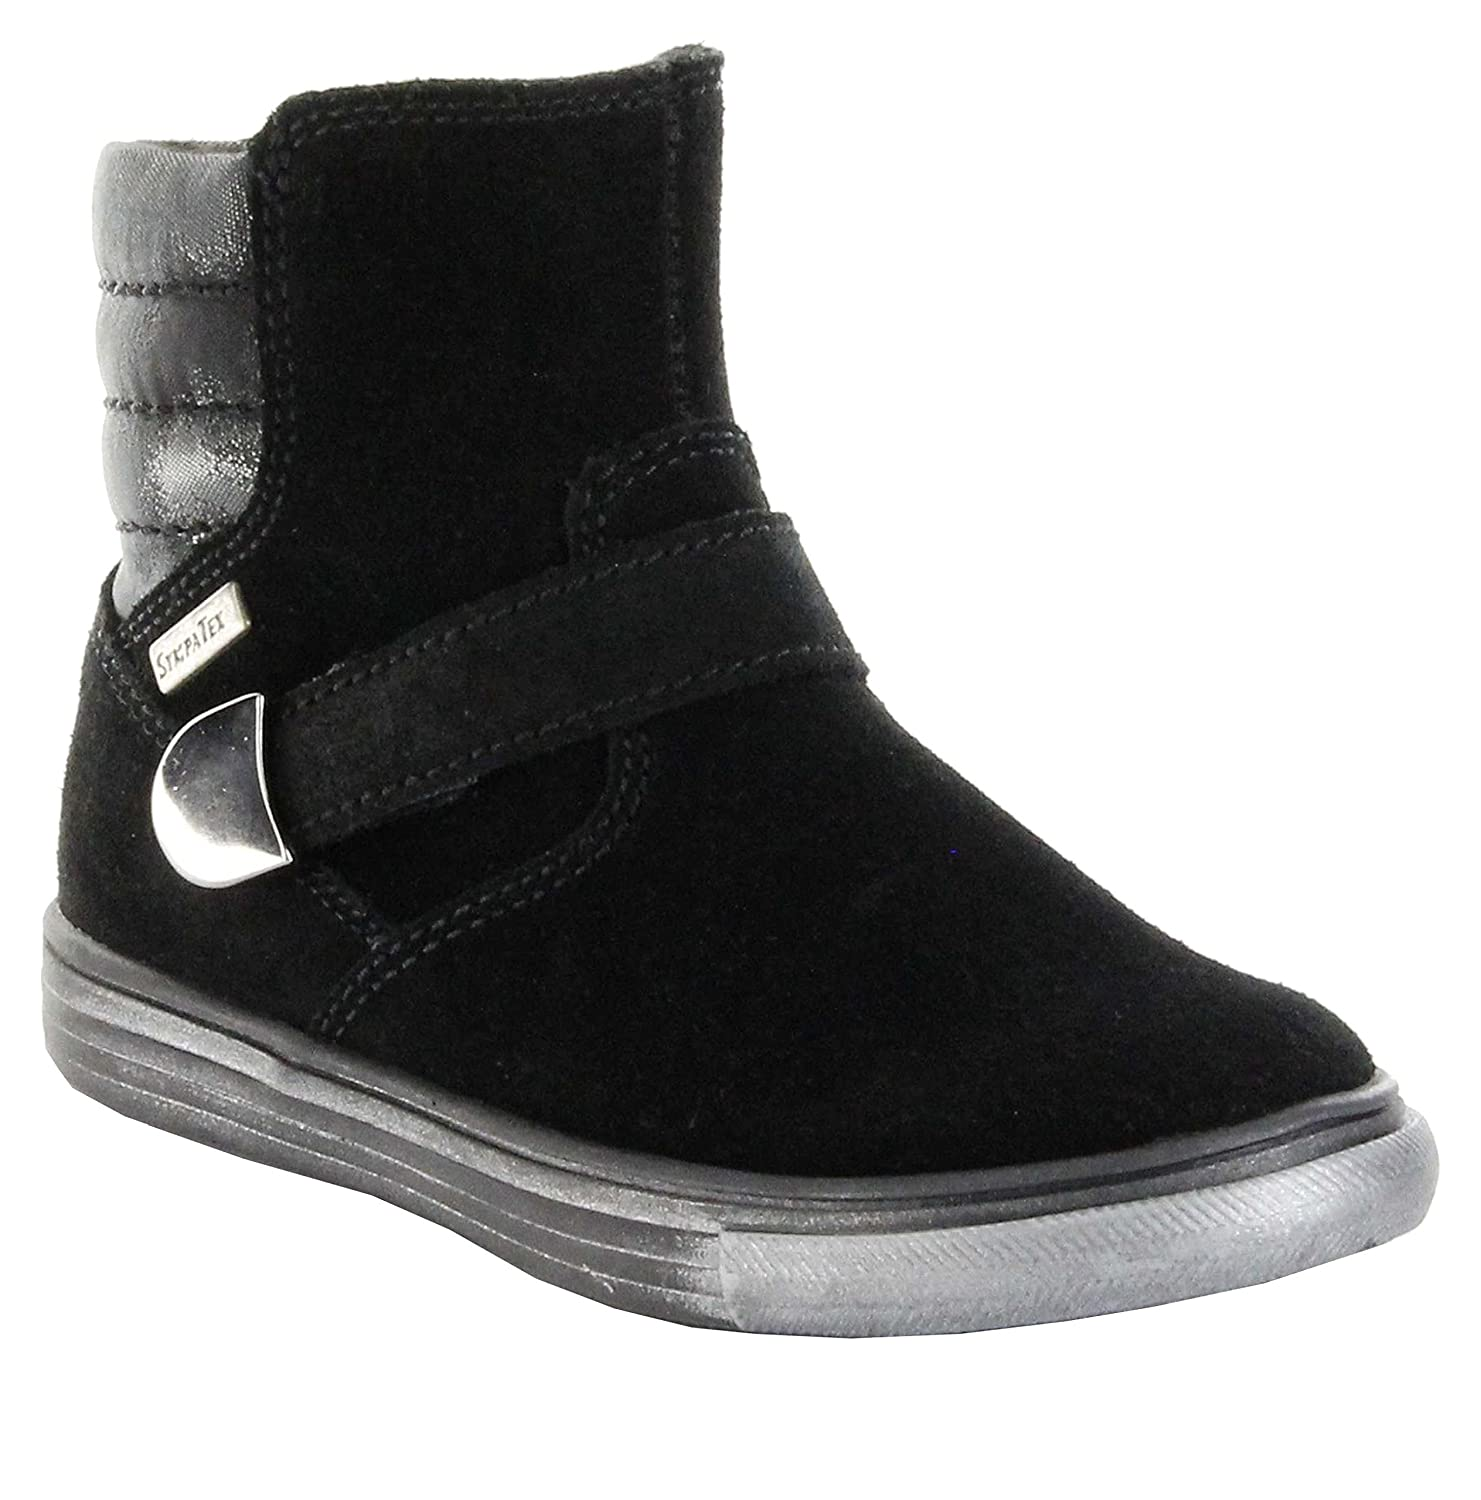 Richter Kinder Winter Stiefeletten black Velour Warm TEX Mädchen 3145-623-9900